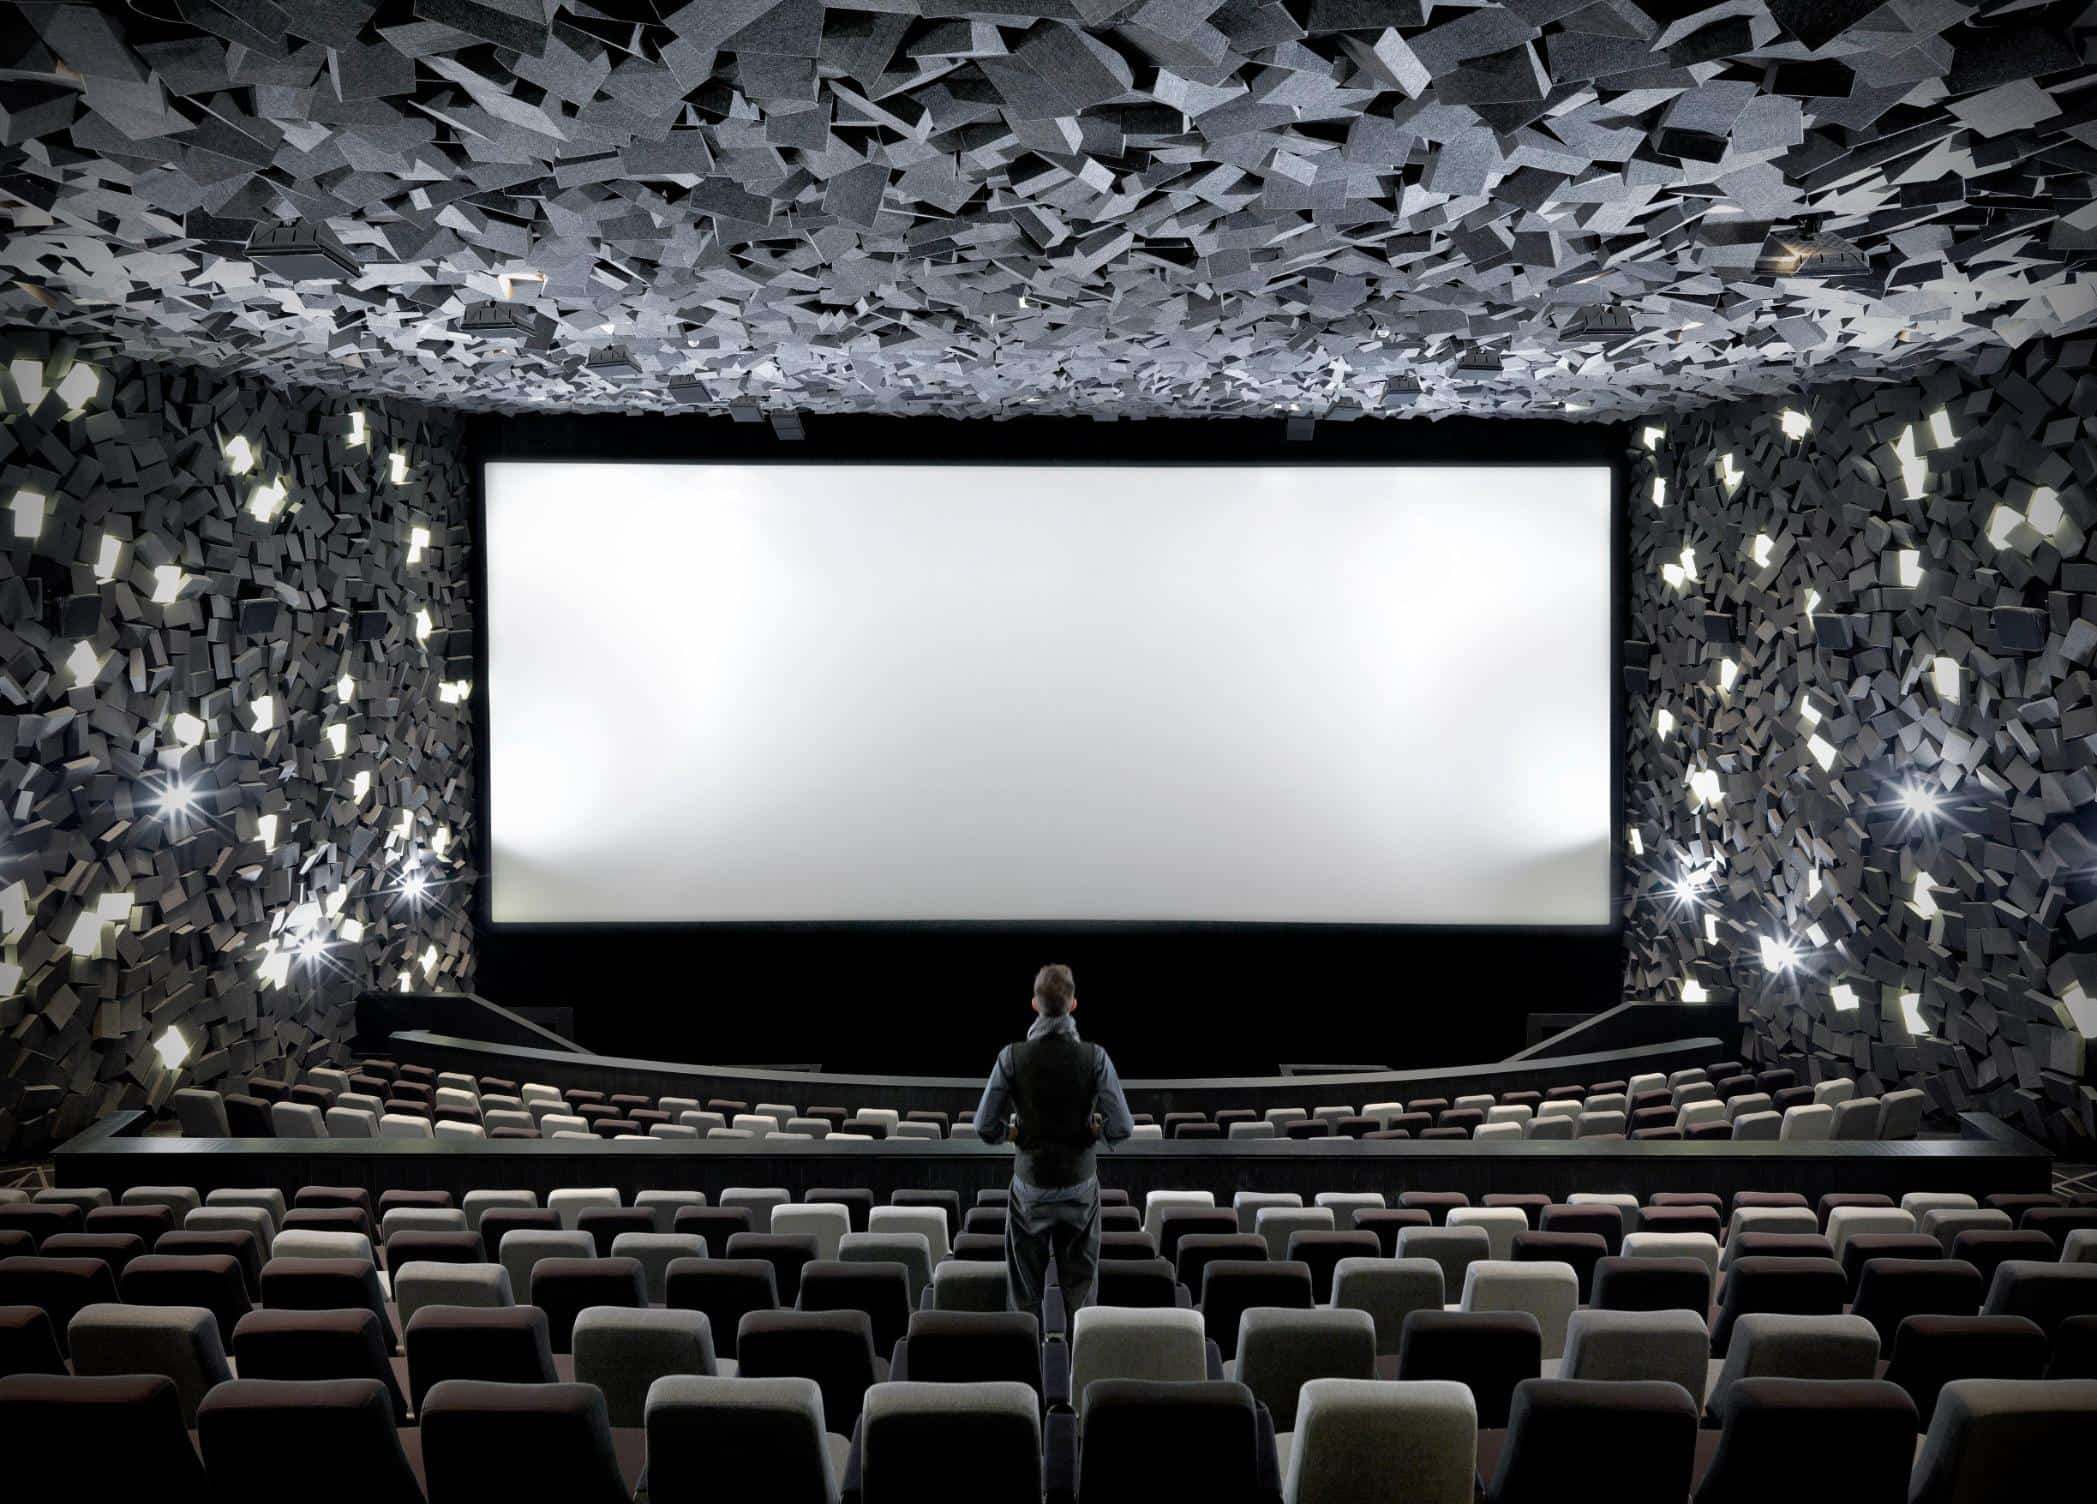 Theatre Room with Screen